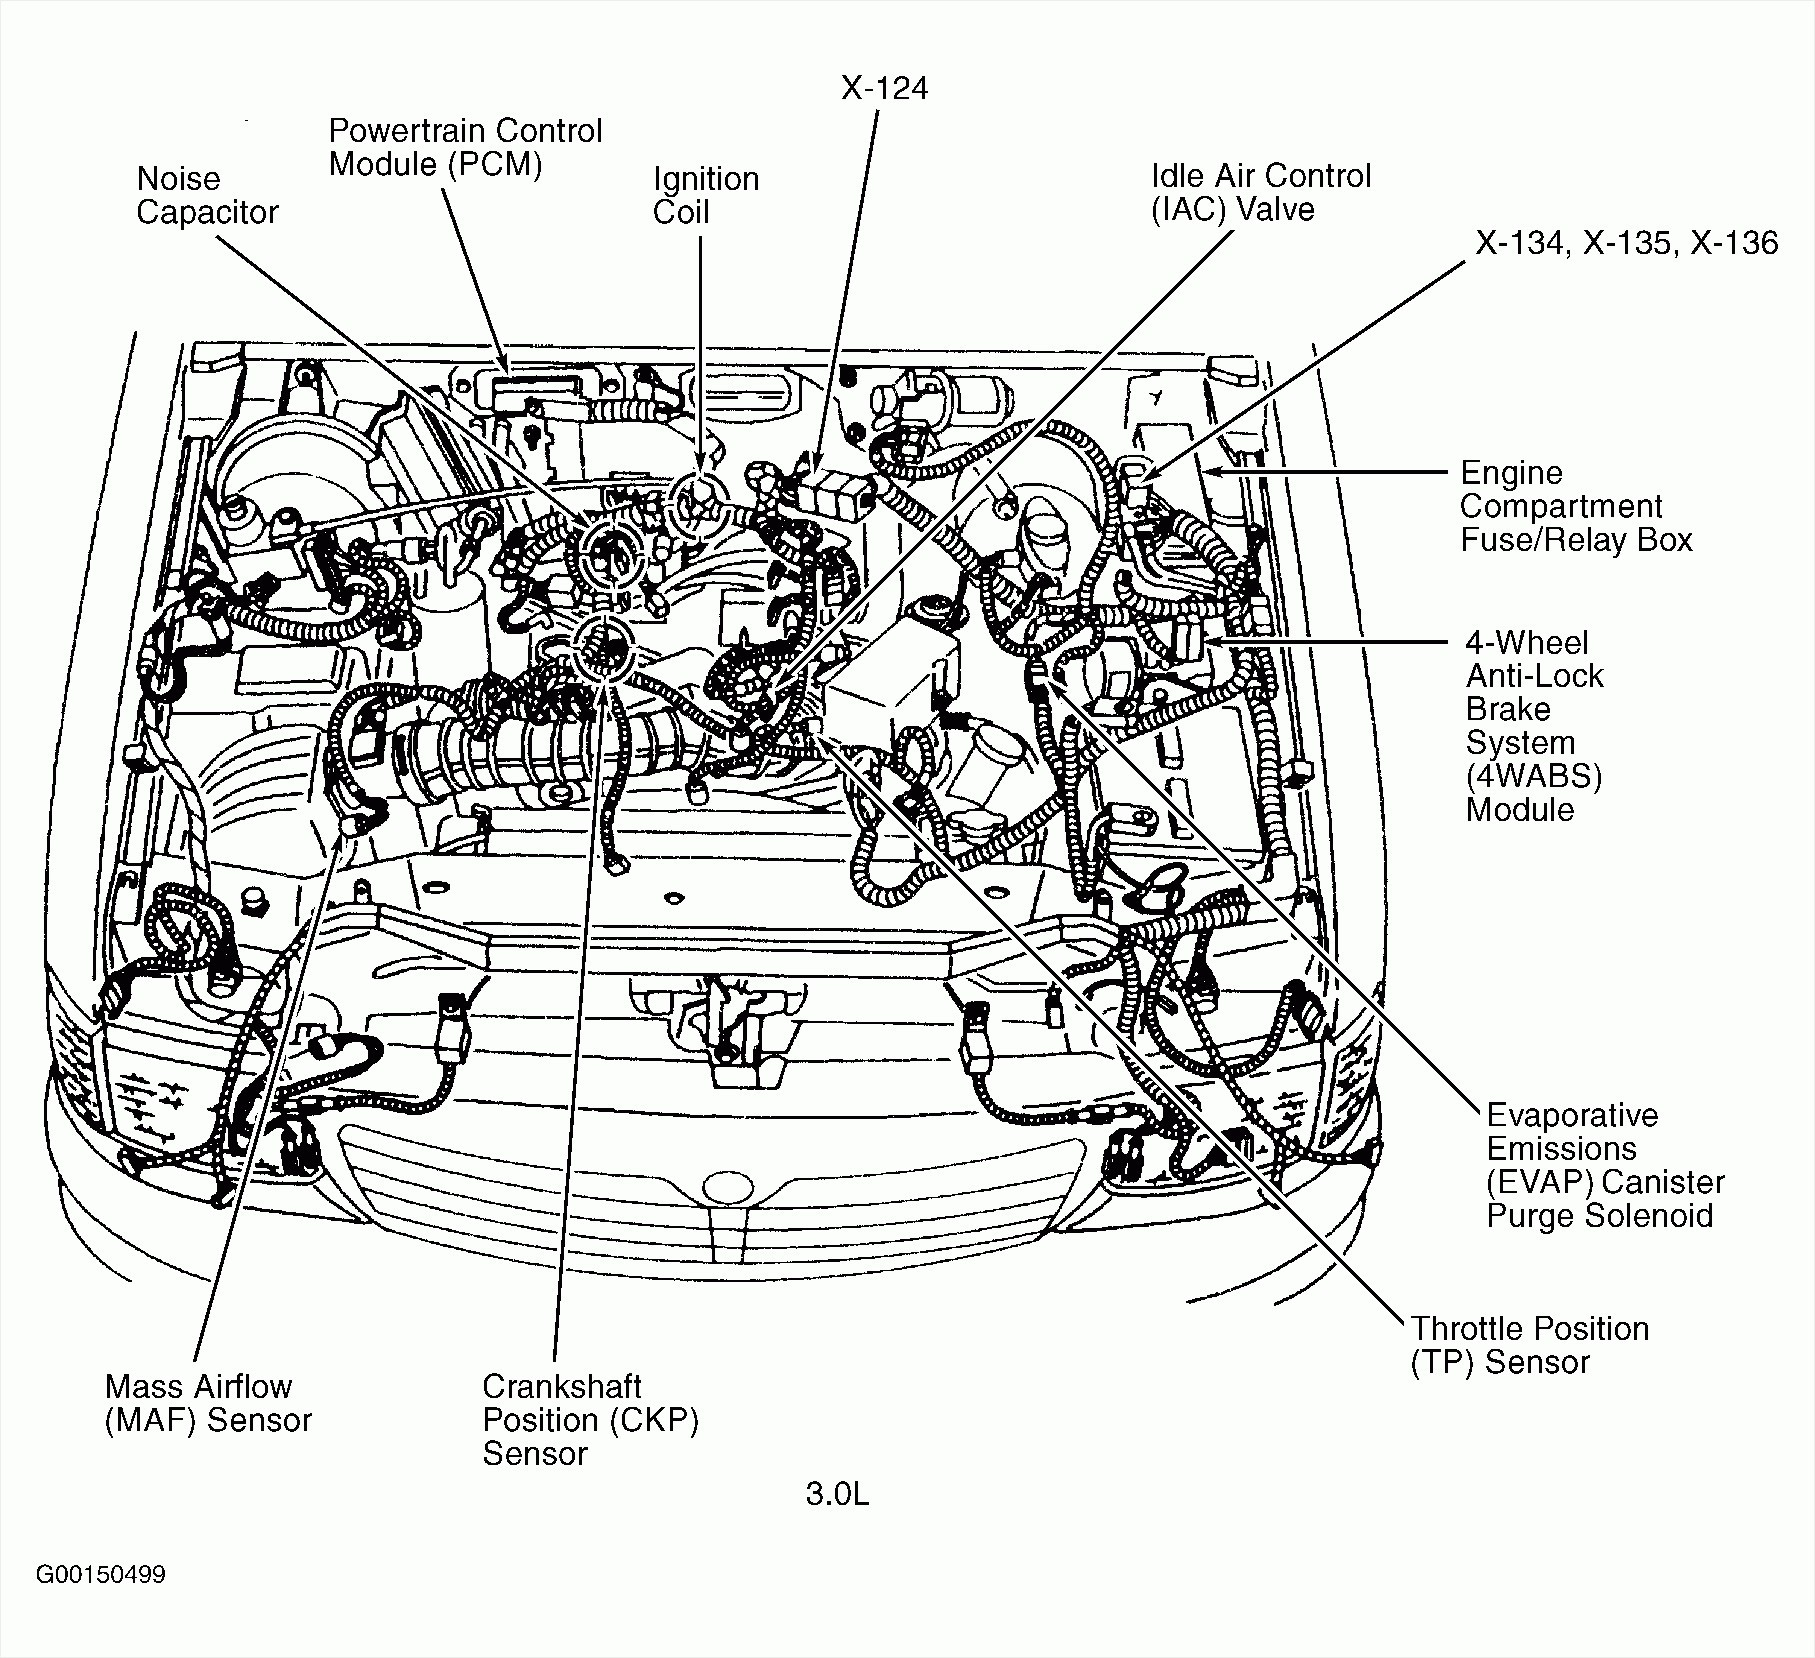 1994 Toyota 3 0 V6 Engine Diagrams - Wiring Diagram Center